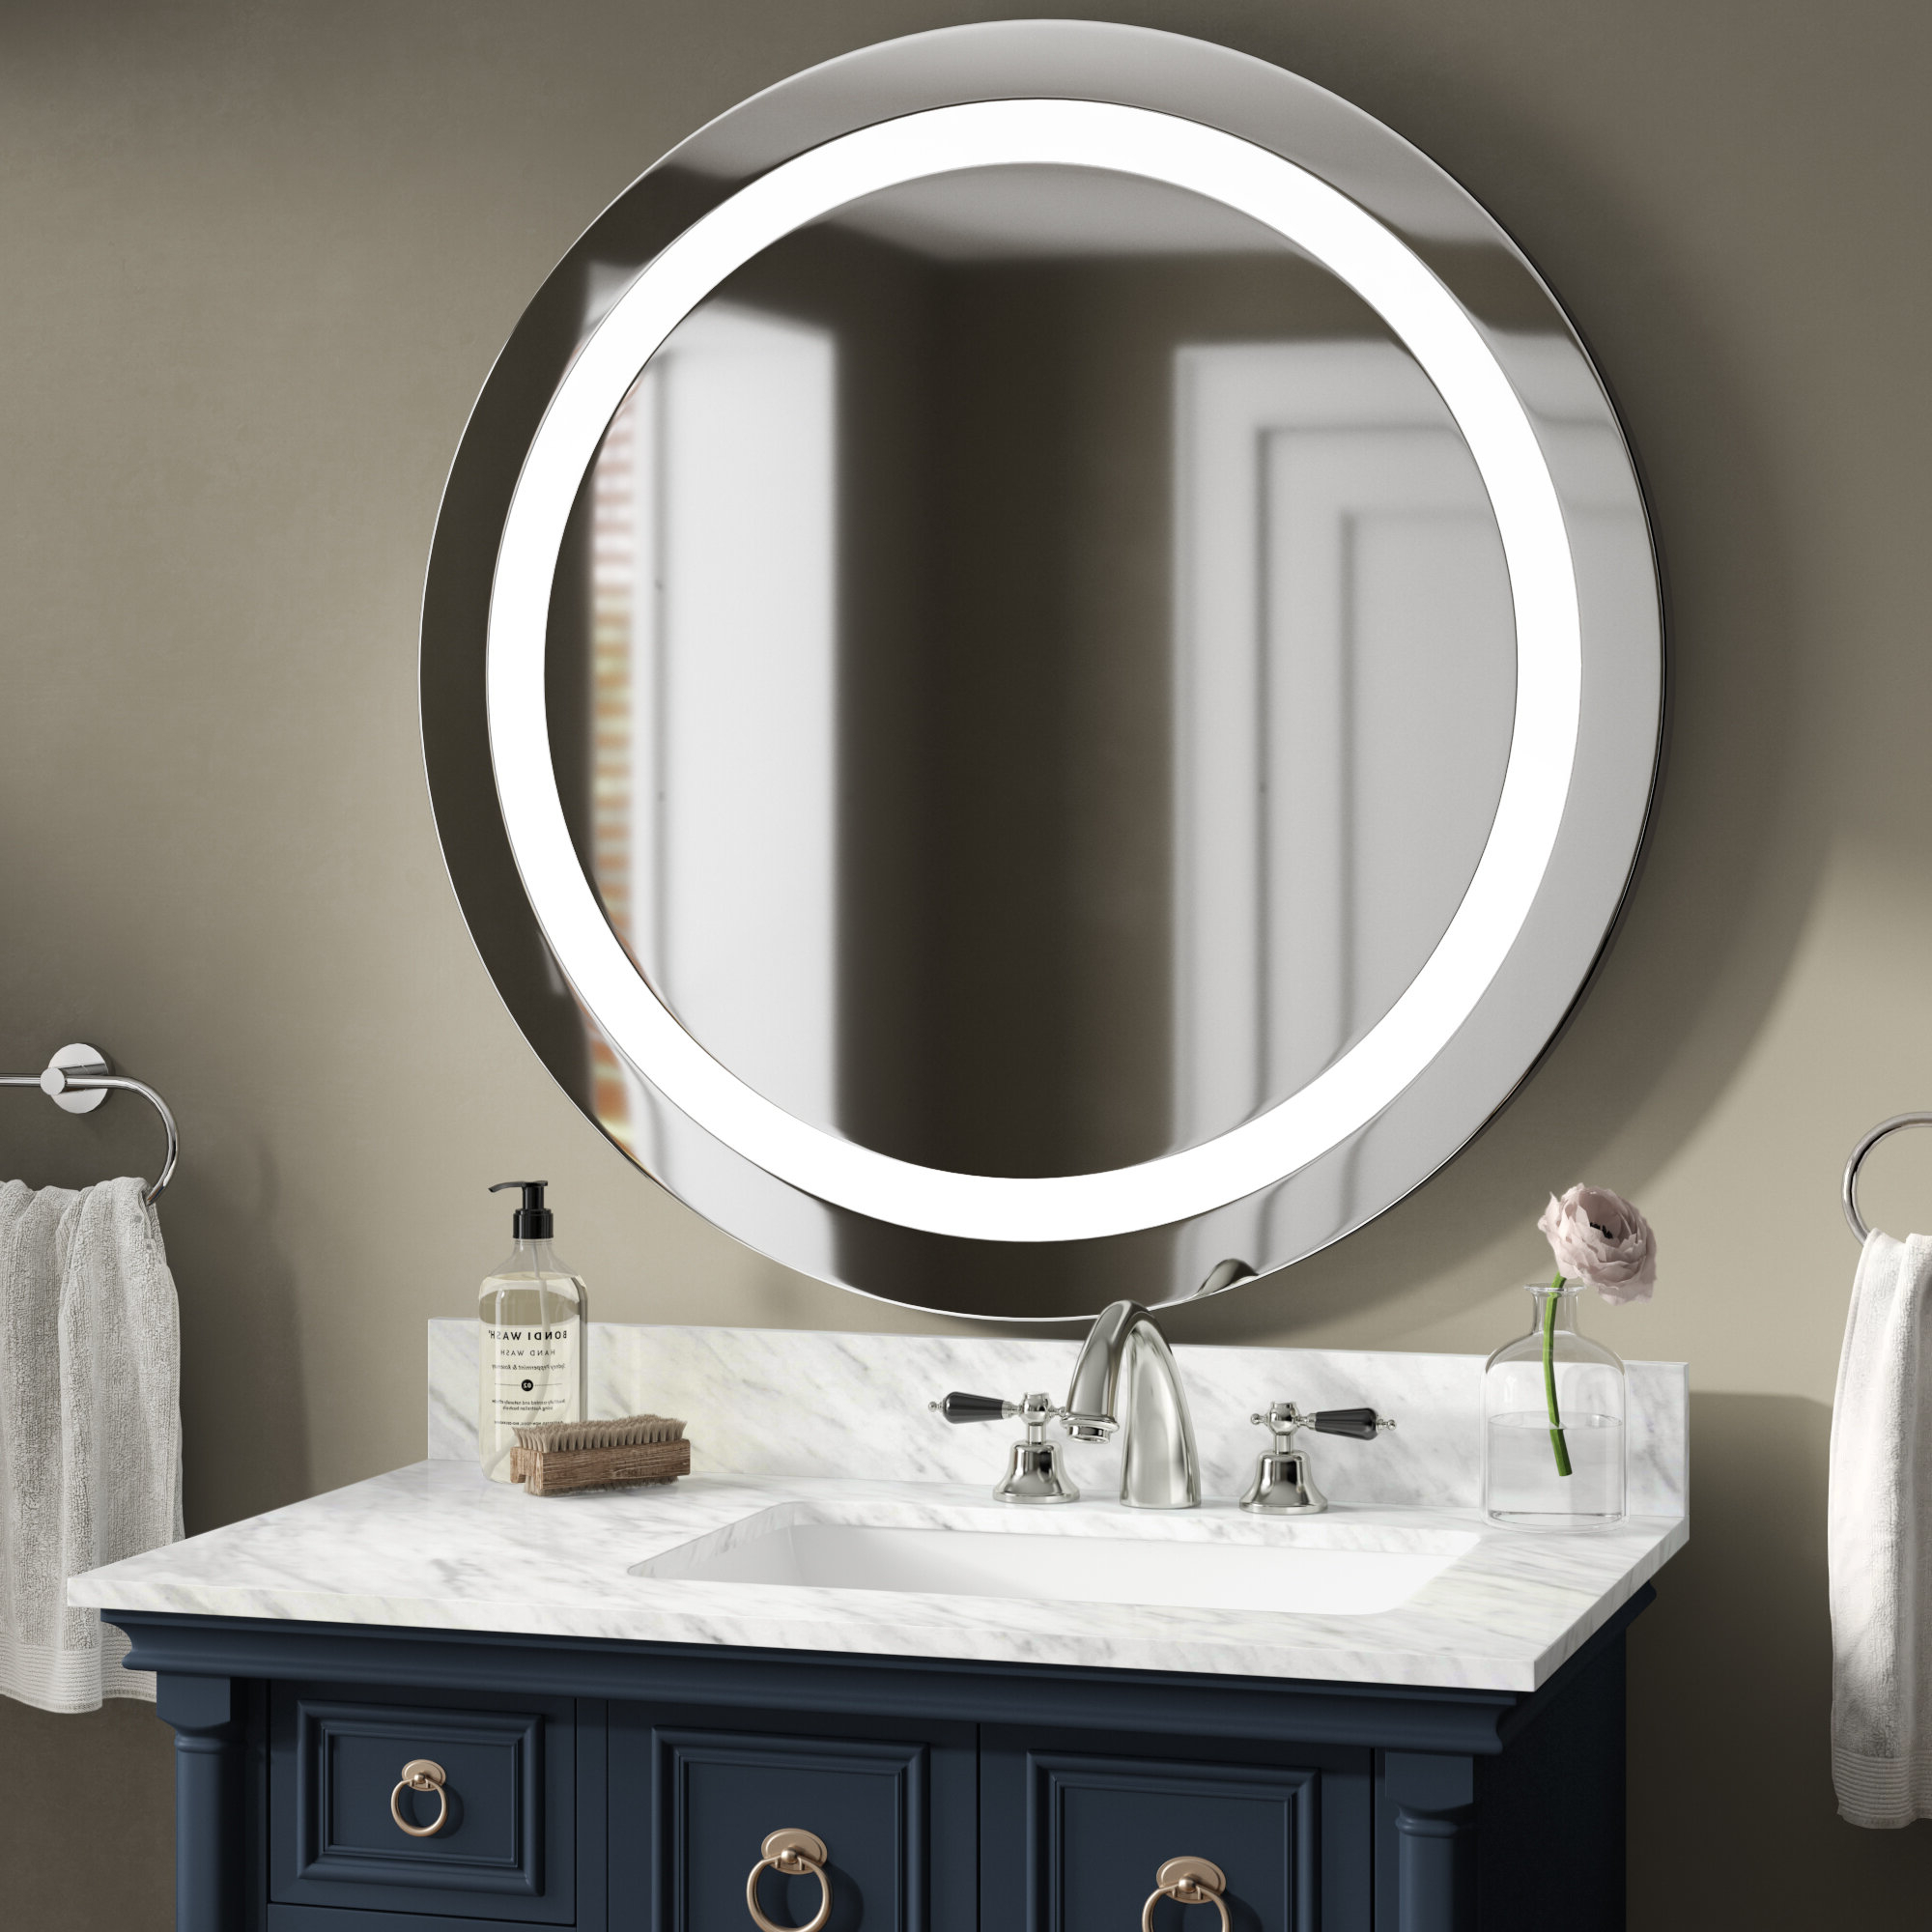 2019 Vanity Wall Mirrors For Bathroom Within Ehrhart Illuminated Bathroom/vanity Wall Mirror (View 18 of 20)